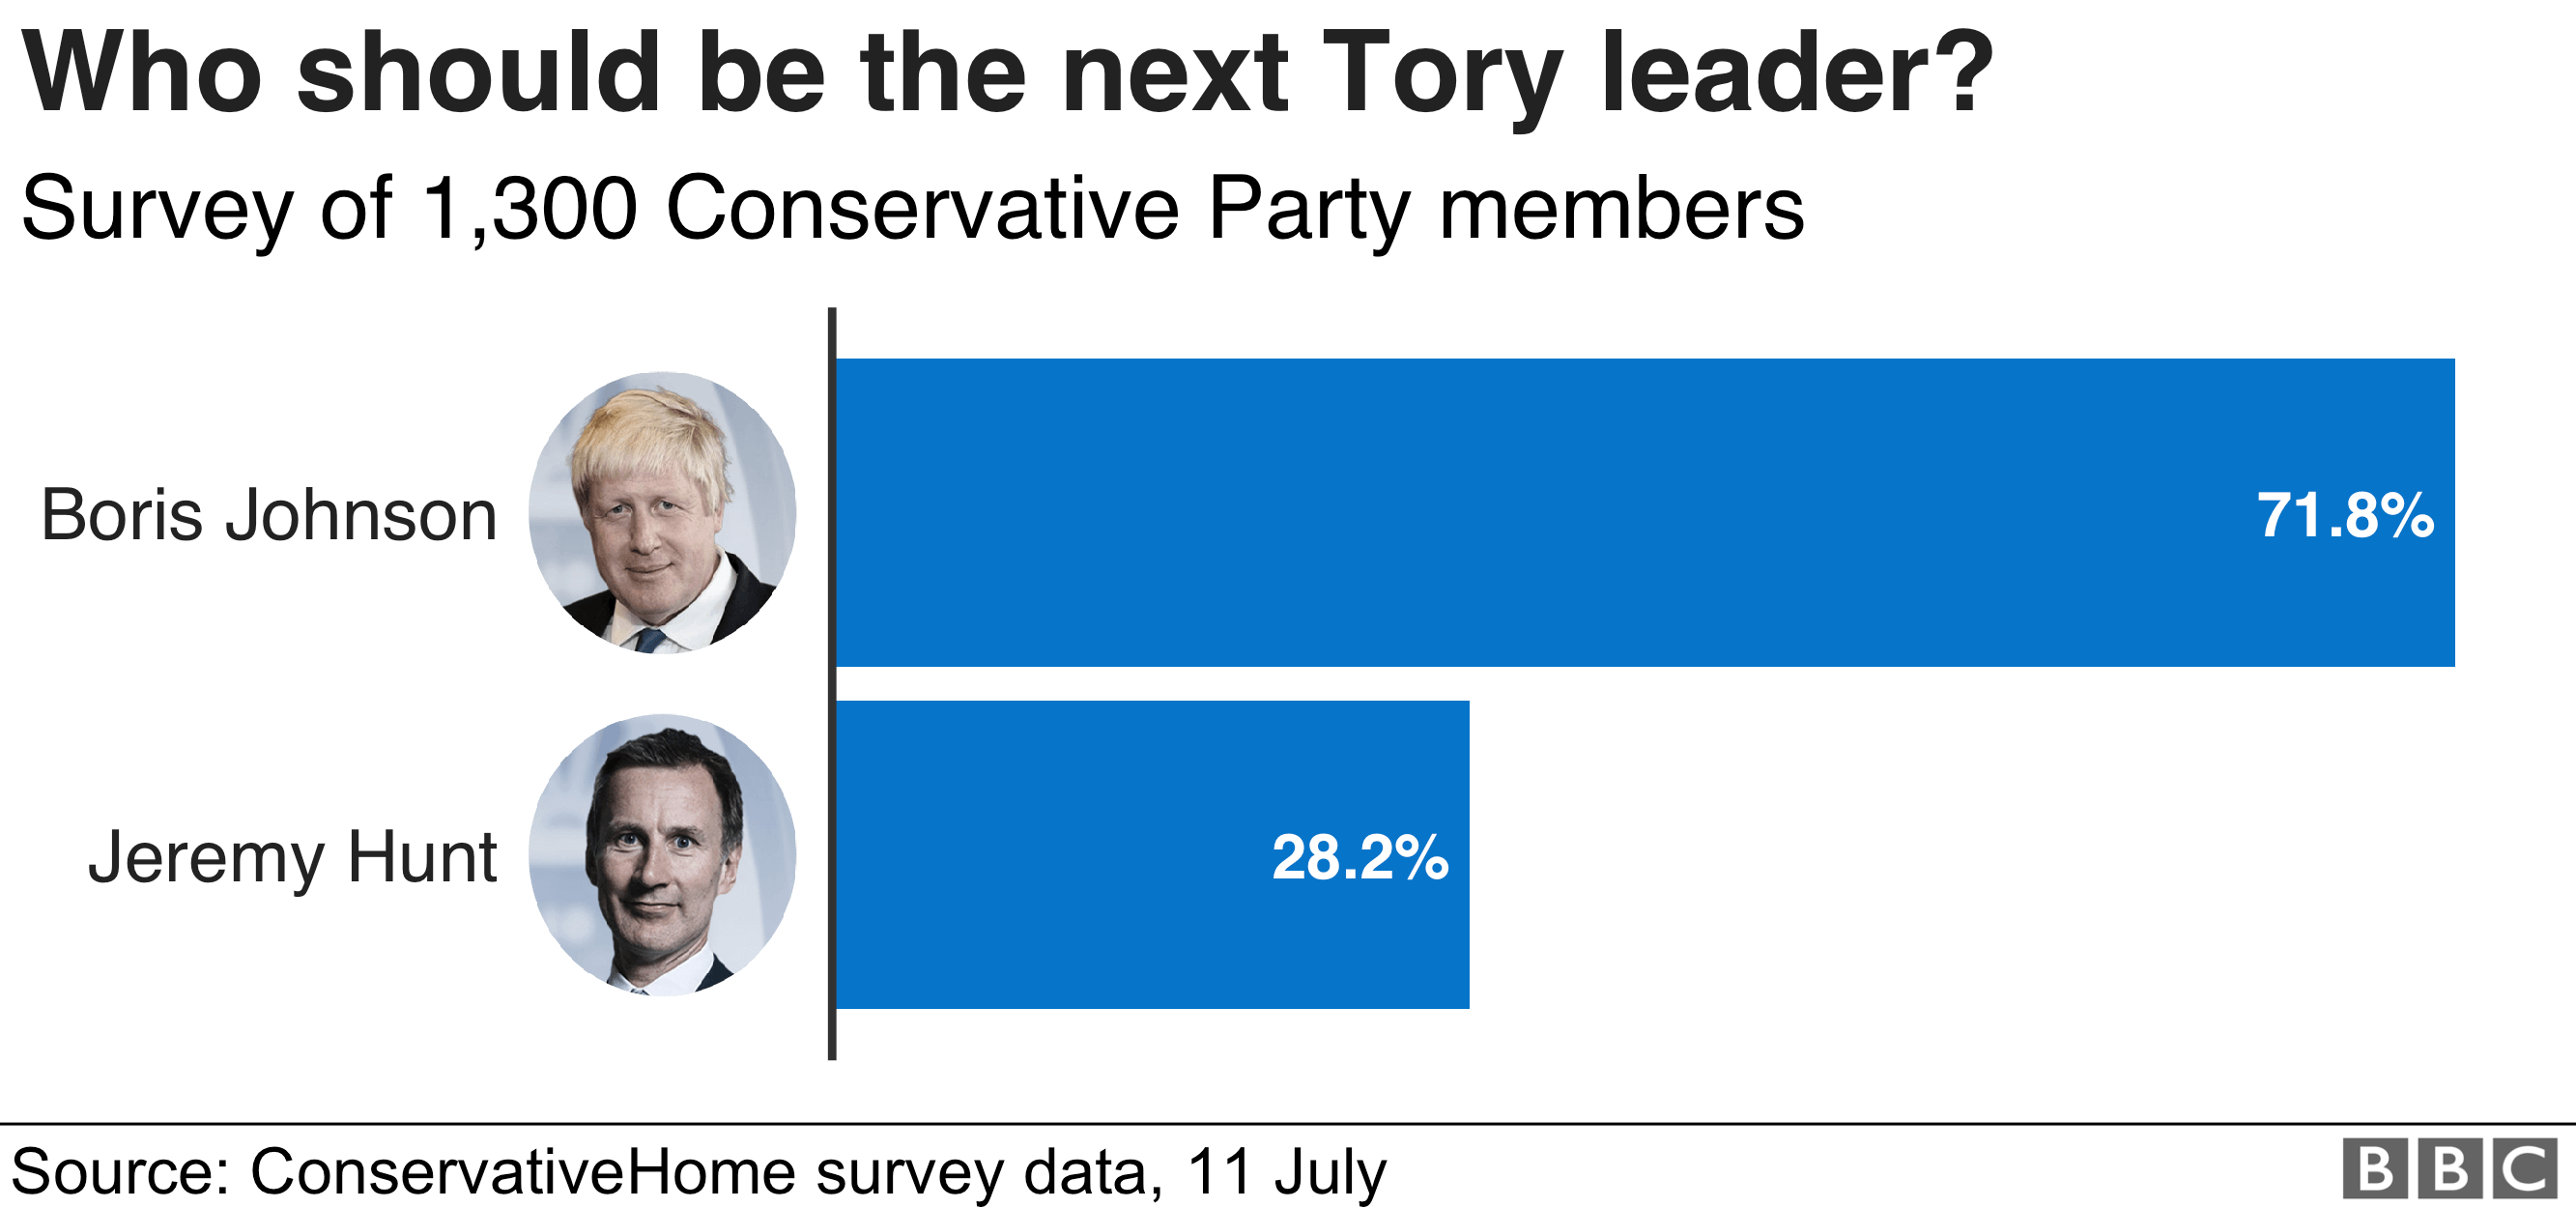 Chart showing the results of a ConservativeHome survey of Tory Party members. Boris Johnson got 71.8% of votes, while Jeremy Hunt got 28.2%